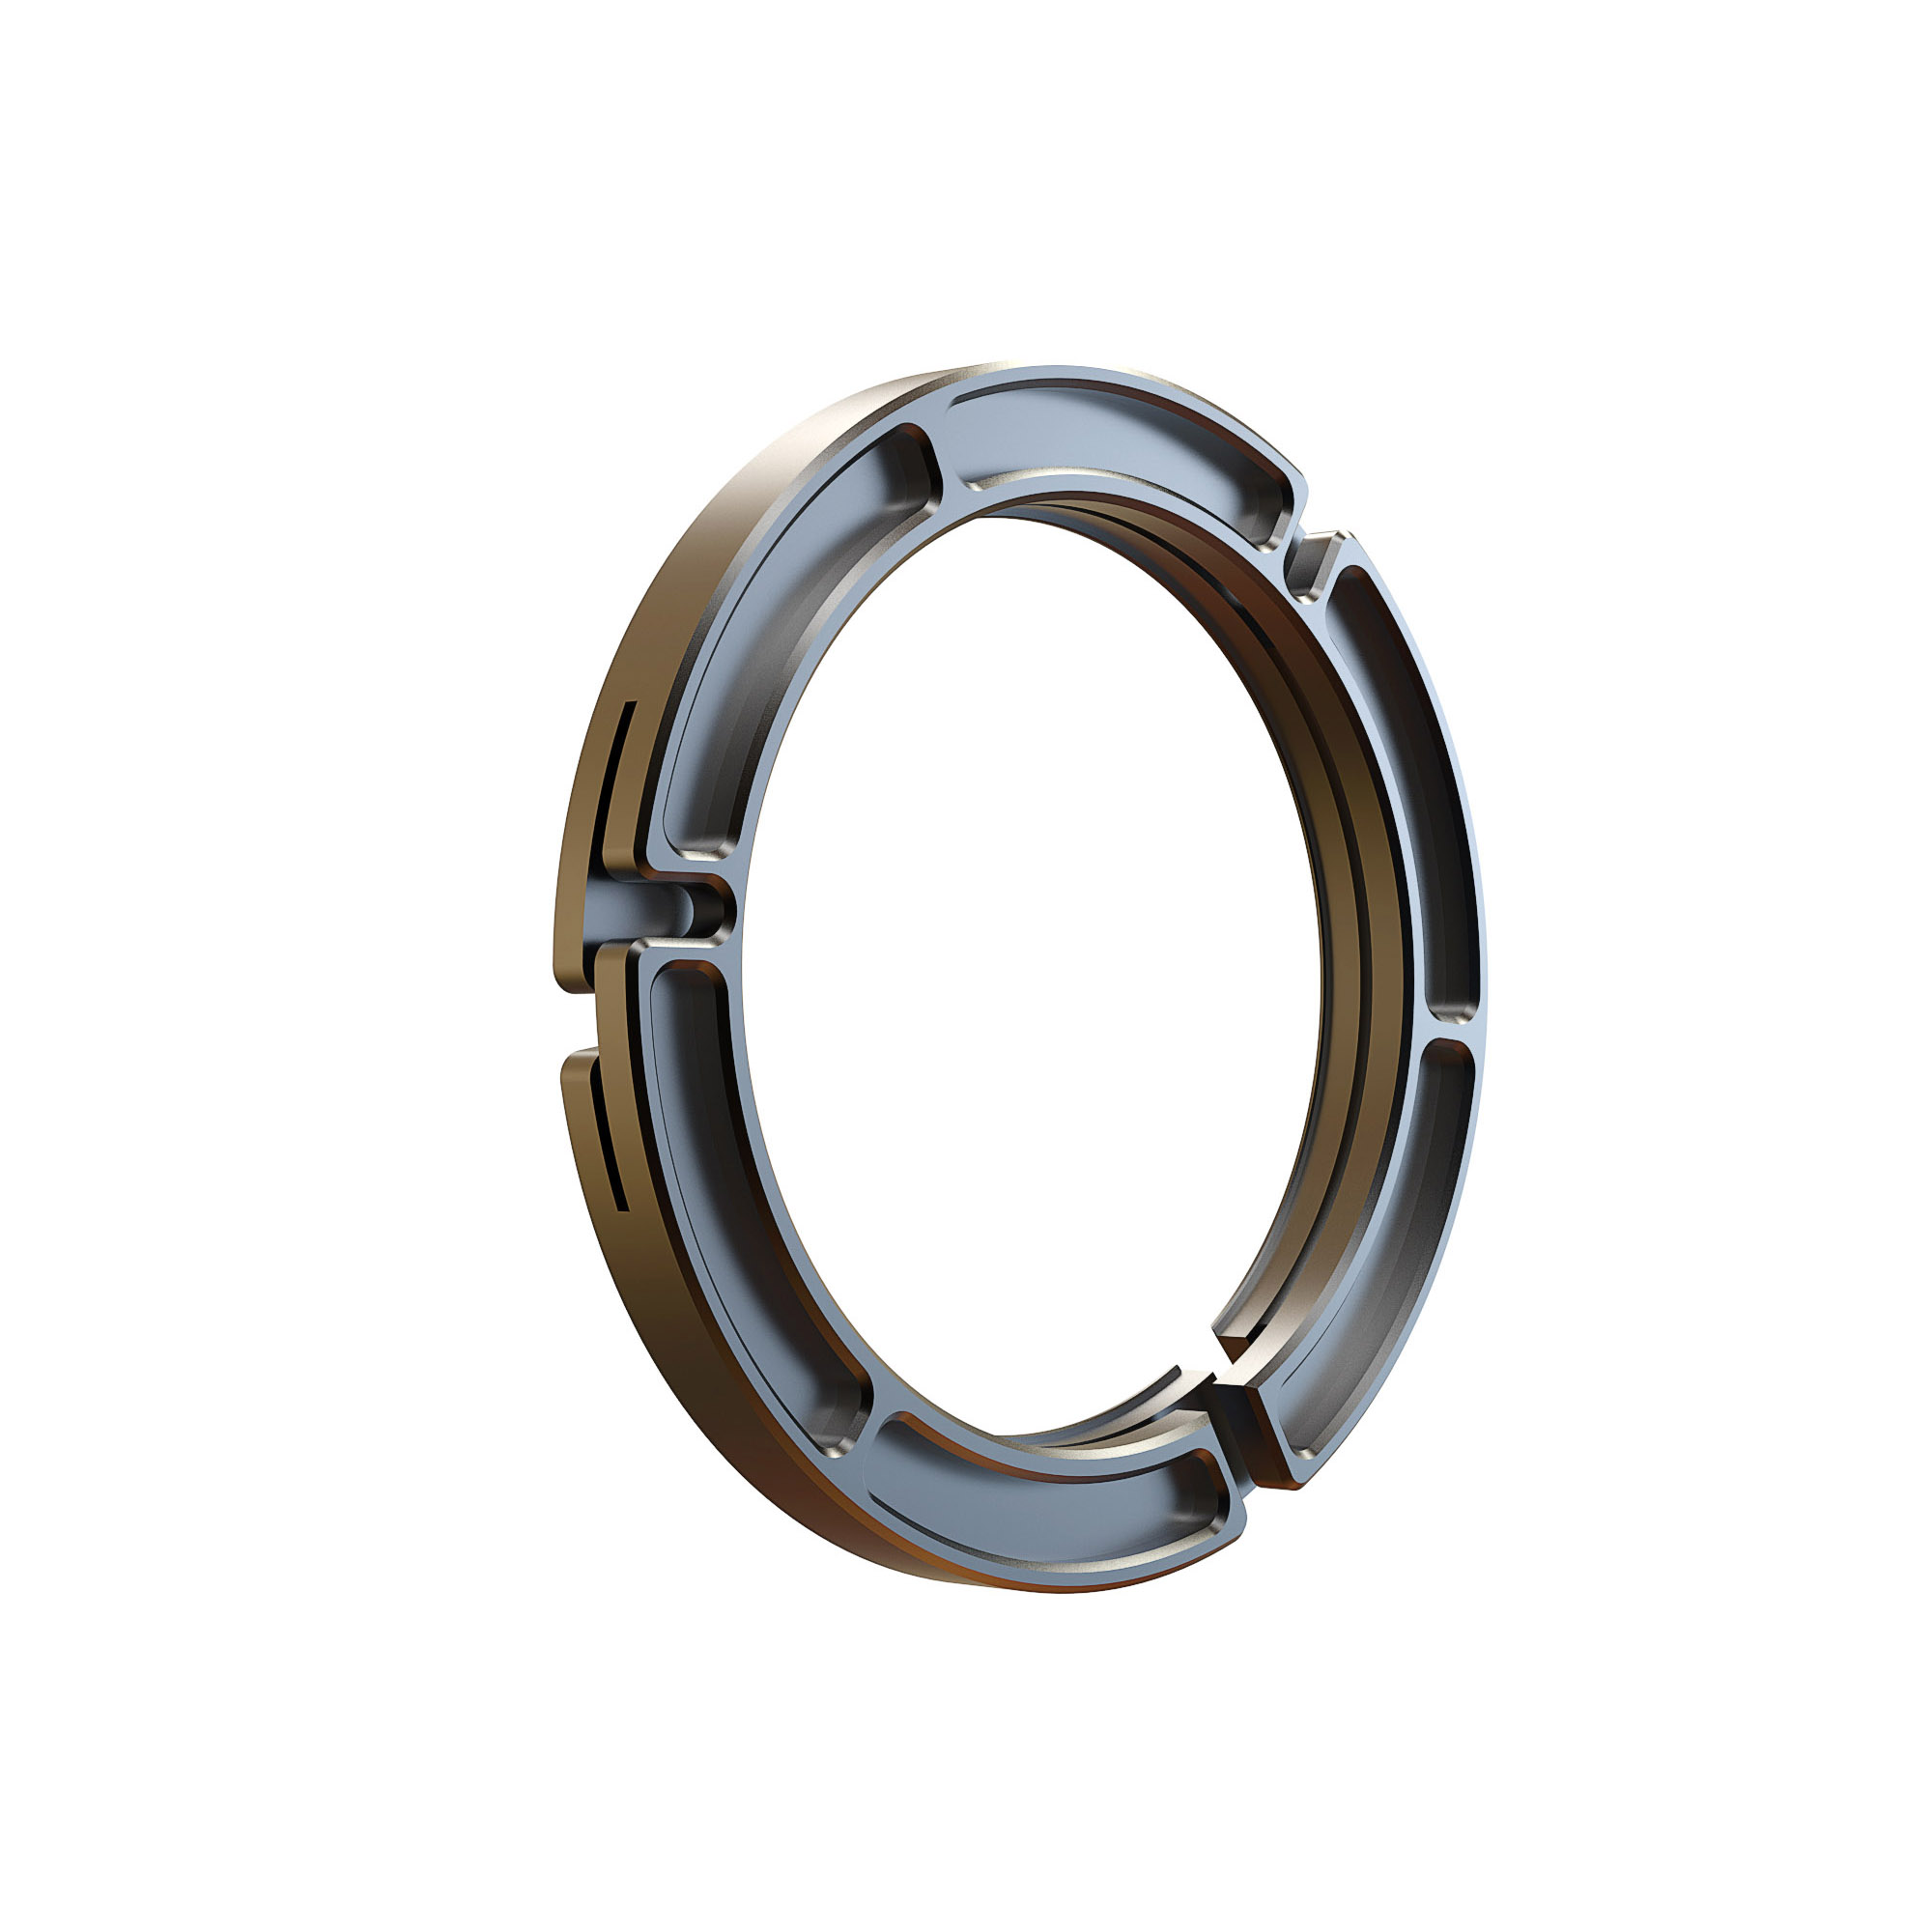 B1250 1052 143 110mm Clamp on Ring 1